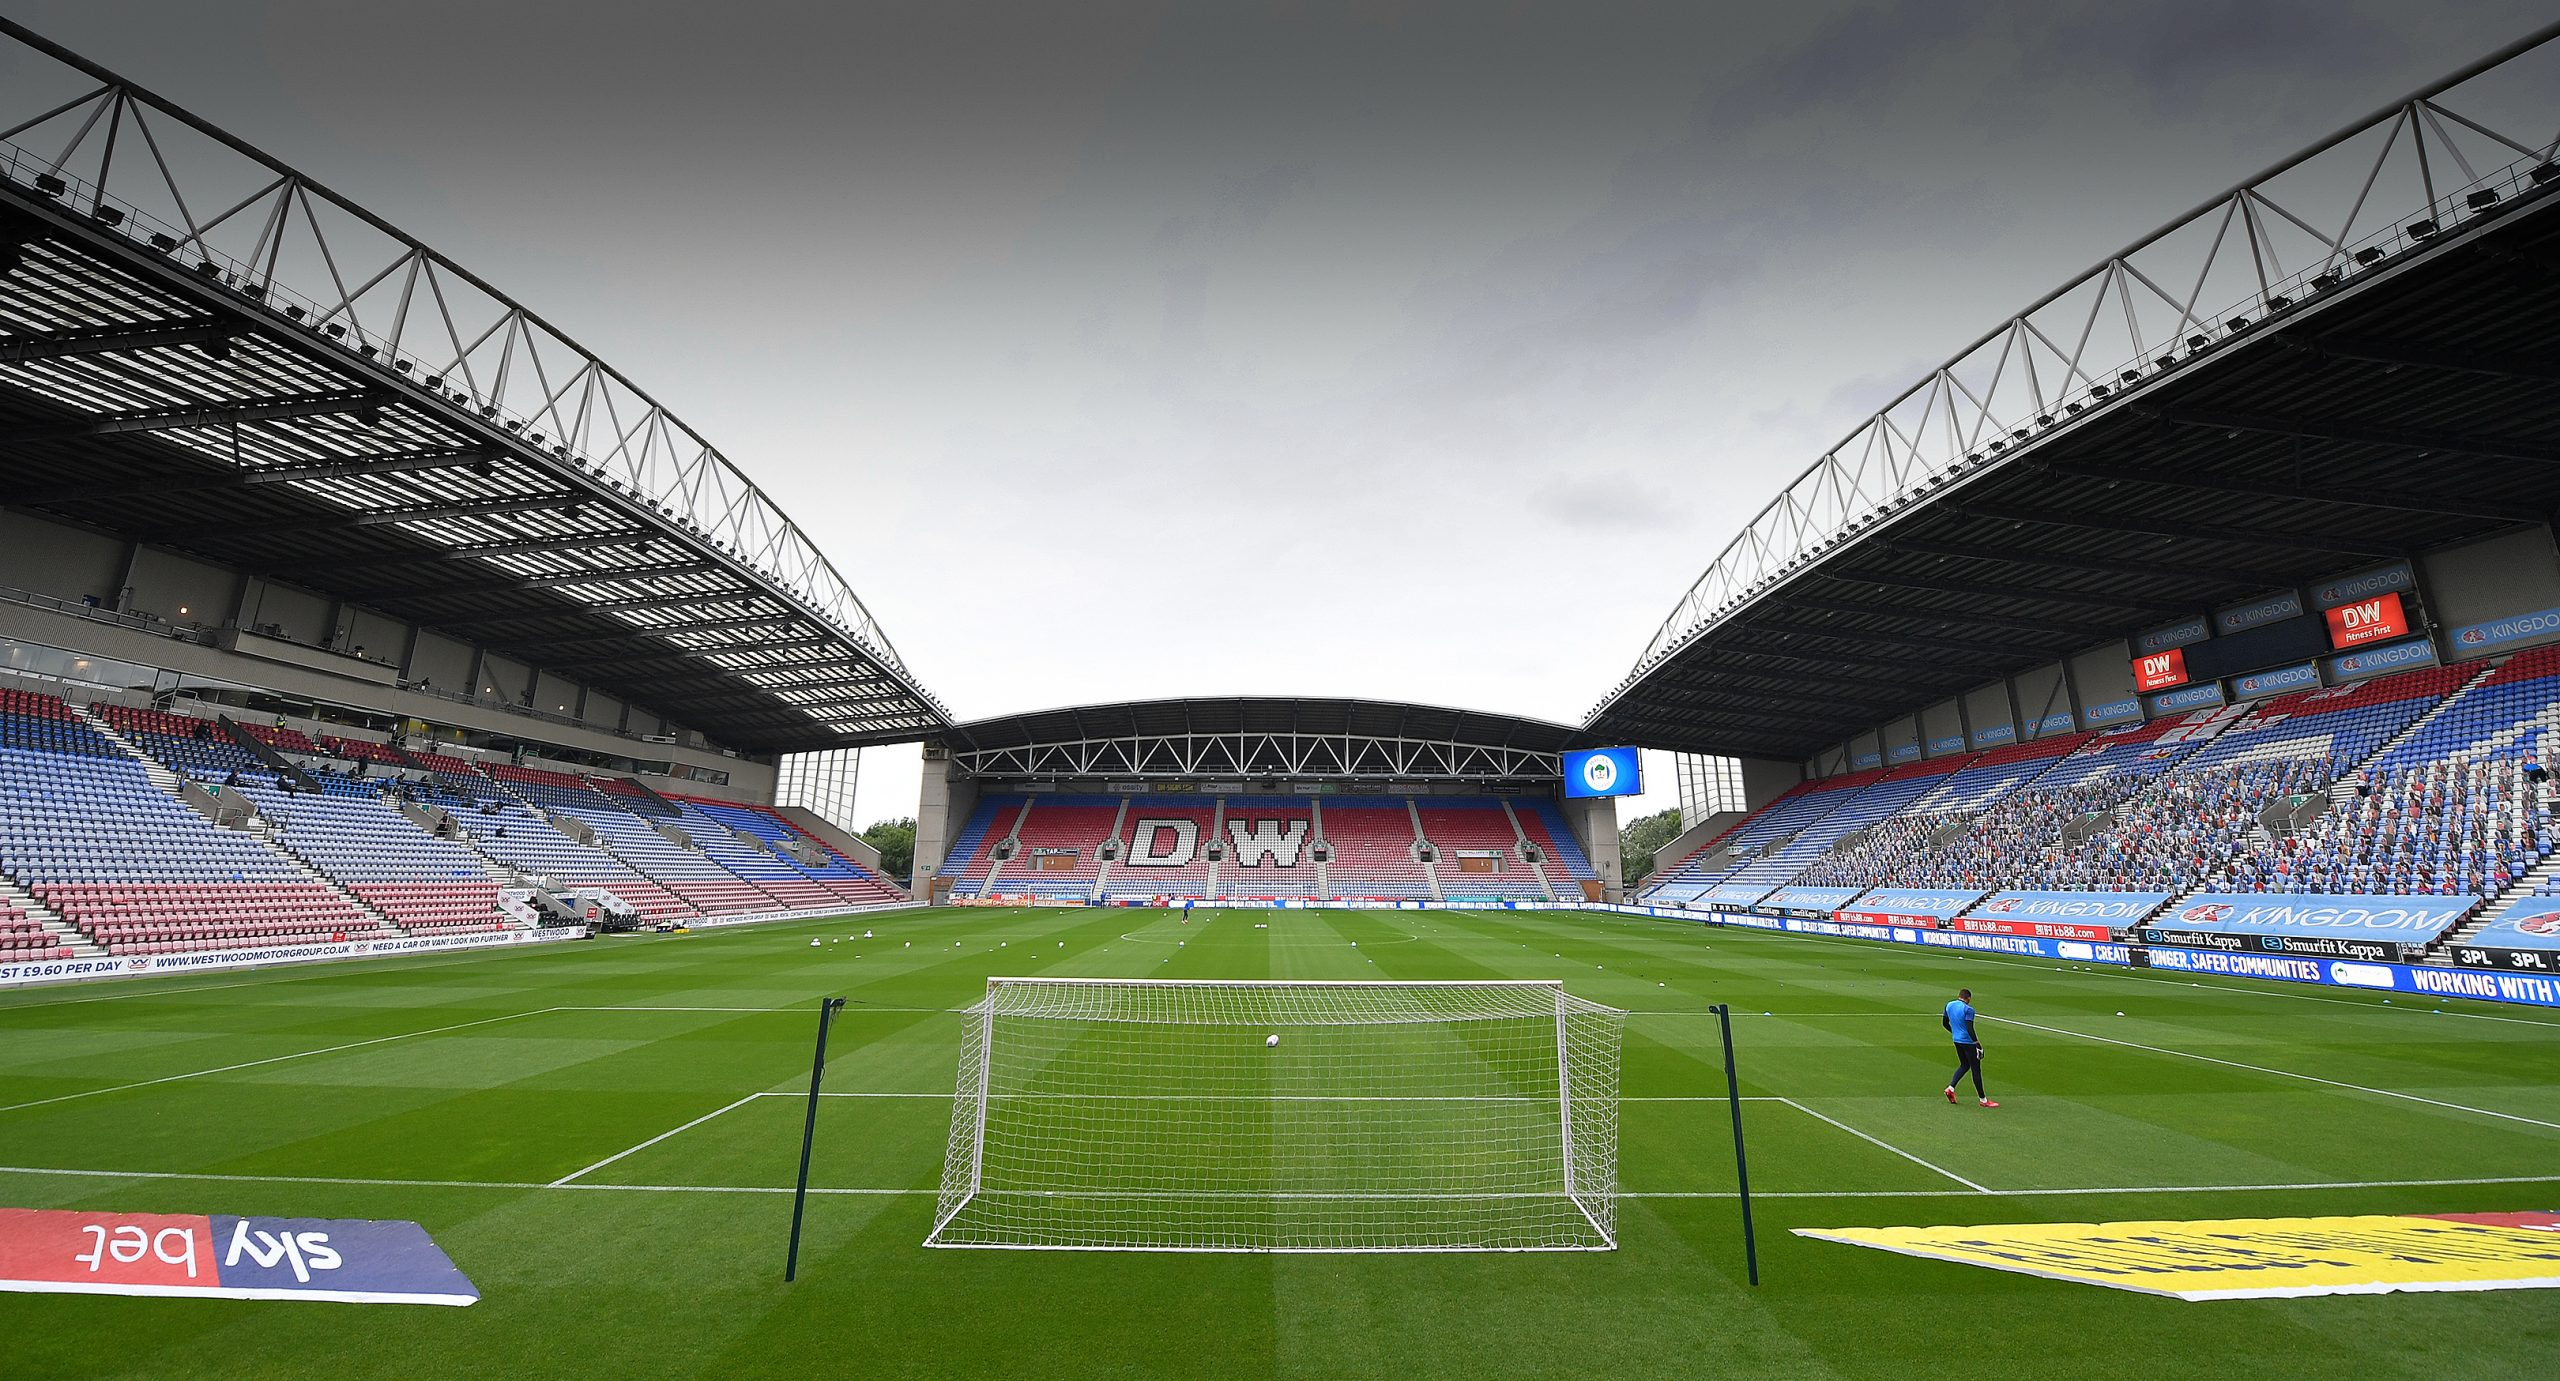 Wigan Athletic: who will buy this football club with a stadium and chip shop